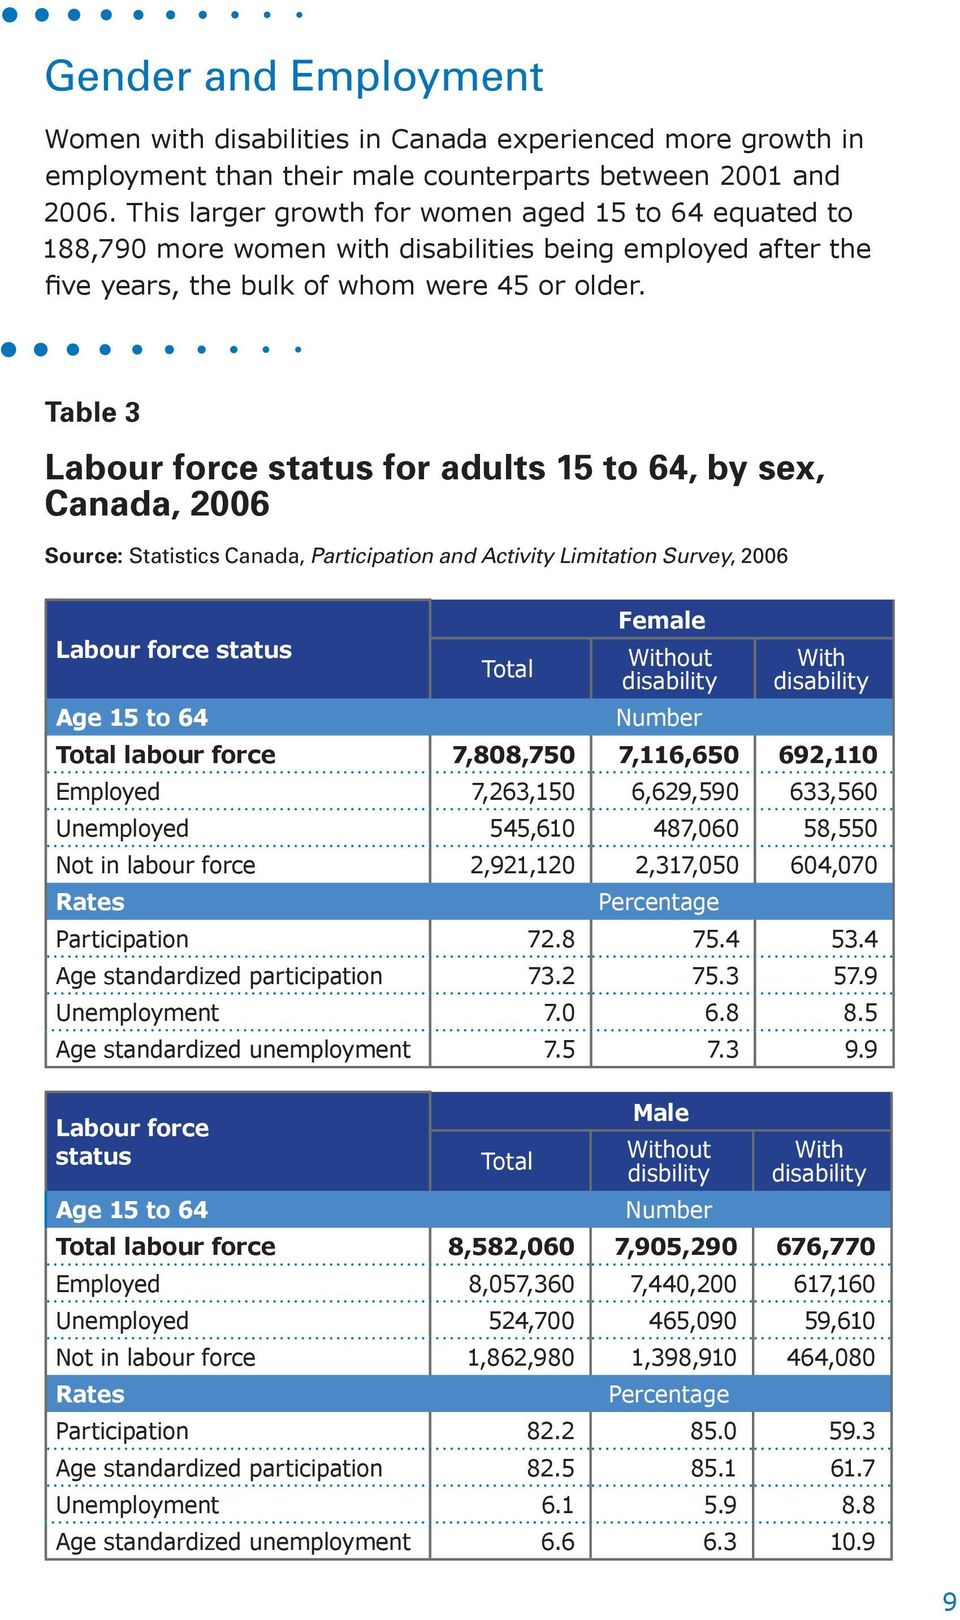 Table 3 Labour force status for adults 15 to 64, by sex, Canada, 2006 Source: Statistics Canada, Participation and Activity Limitation Survey, 2006 Labour force status Age 15 to 64 Total Female